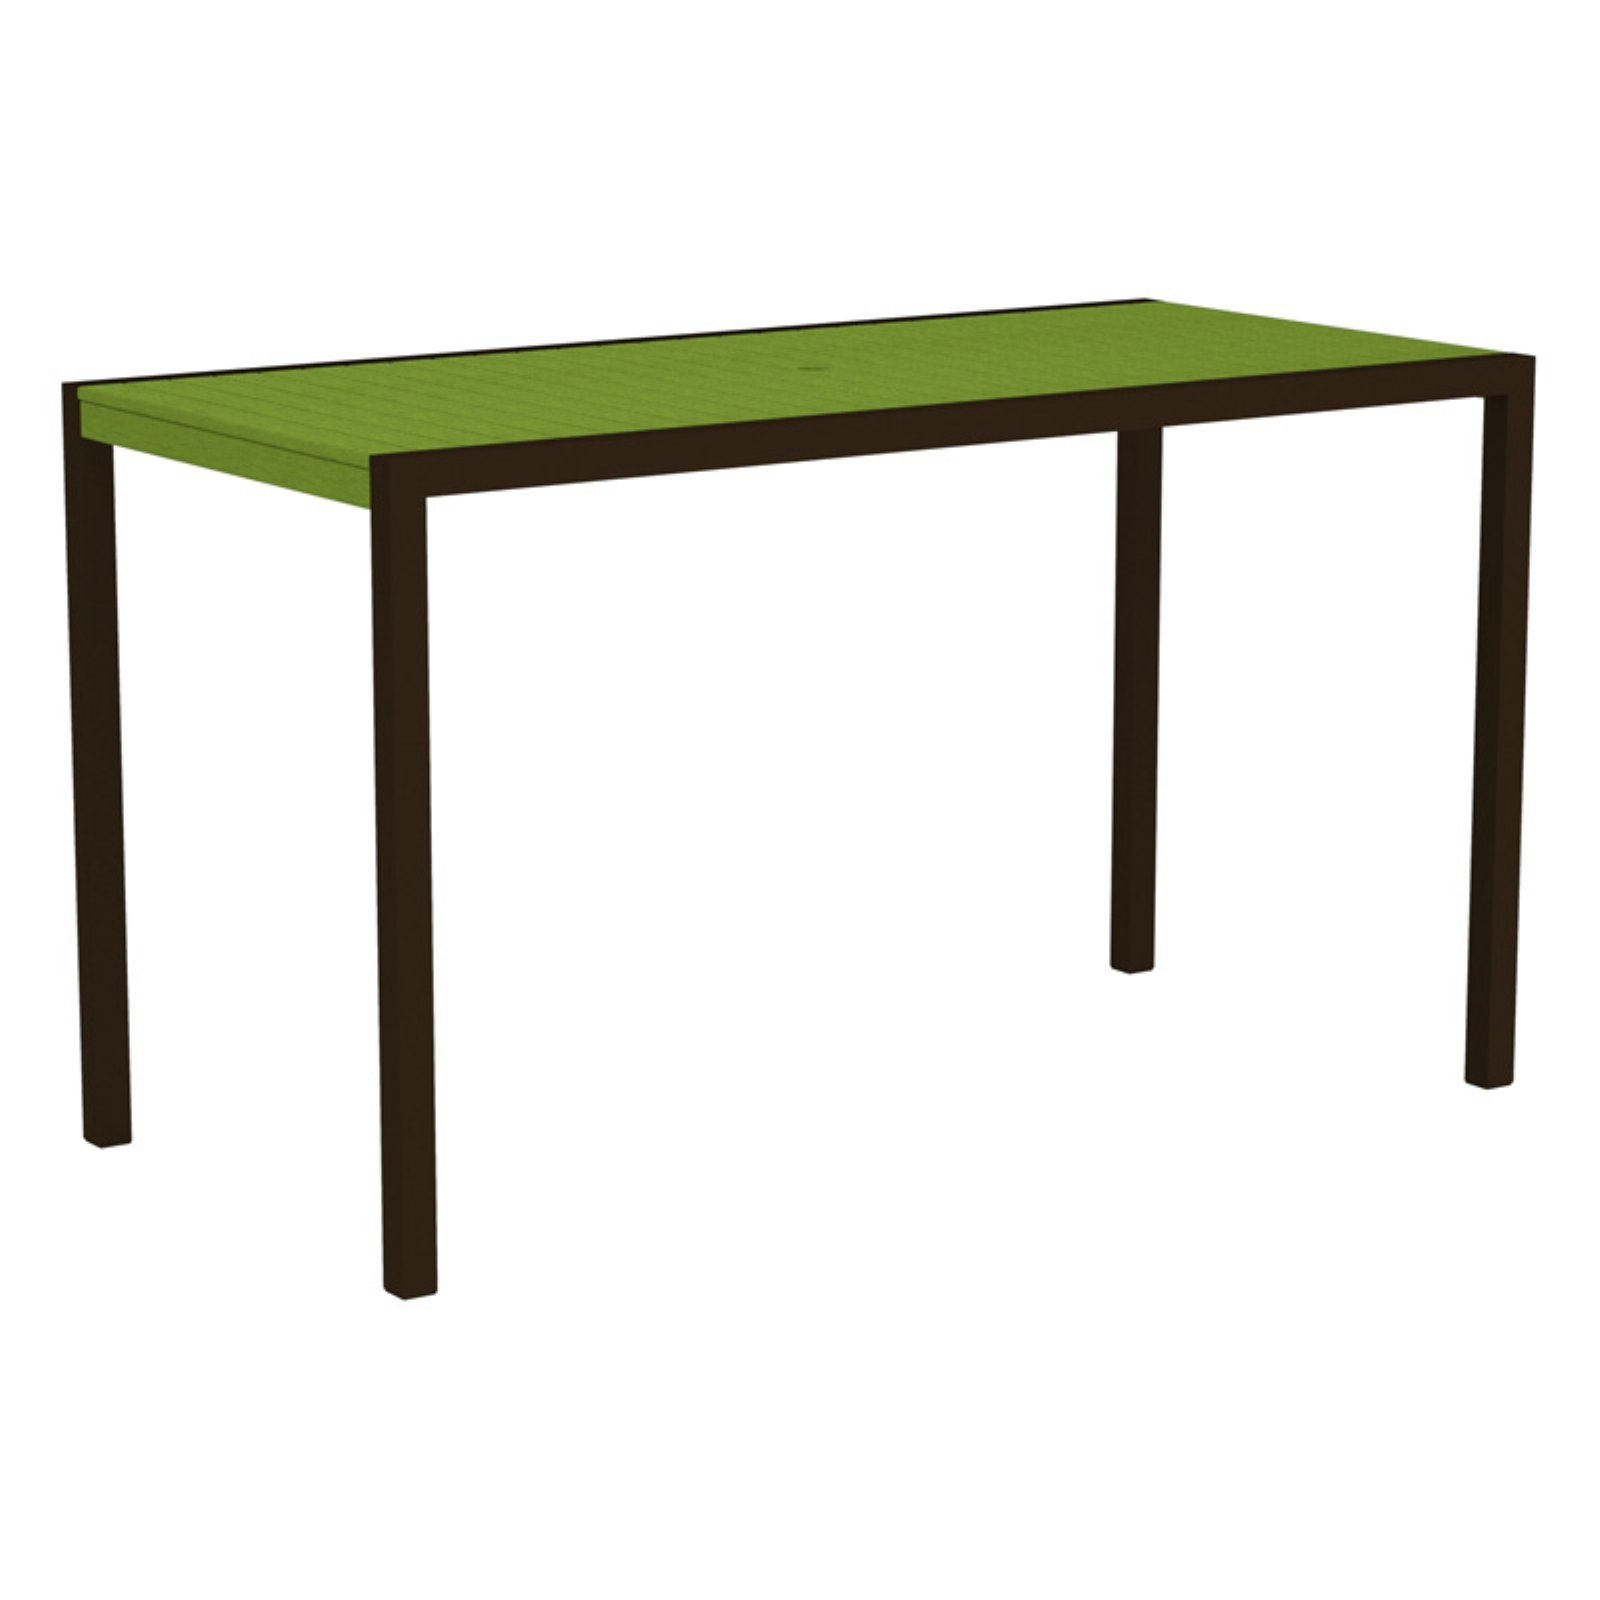 POLYWOOD MOD 36 x 73 in. Pub Table with Aluminum Frame by Polywood